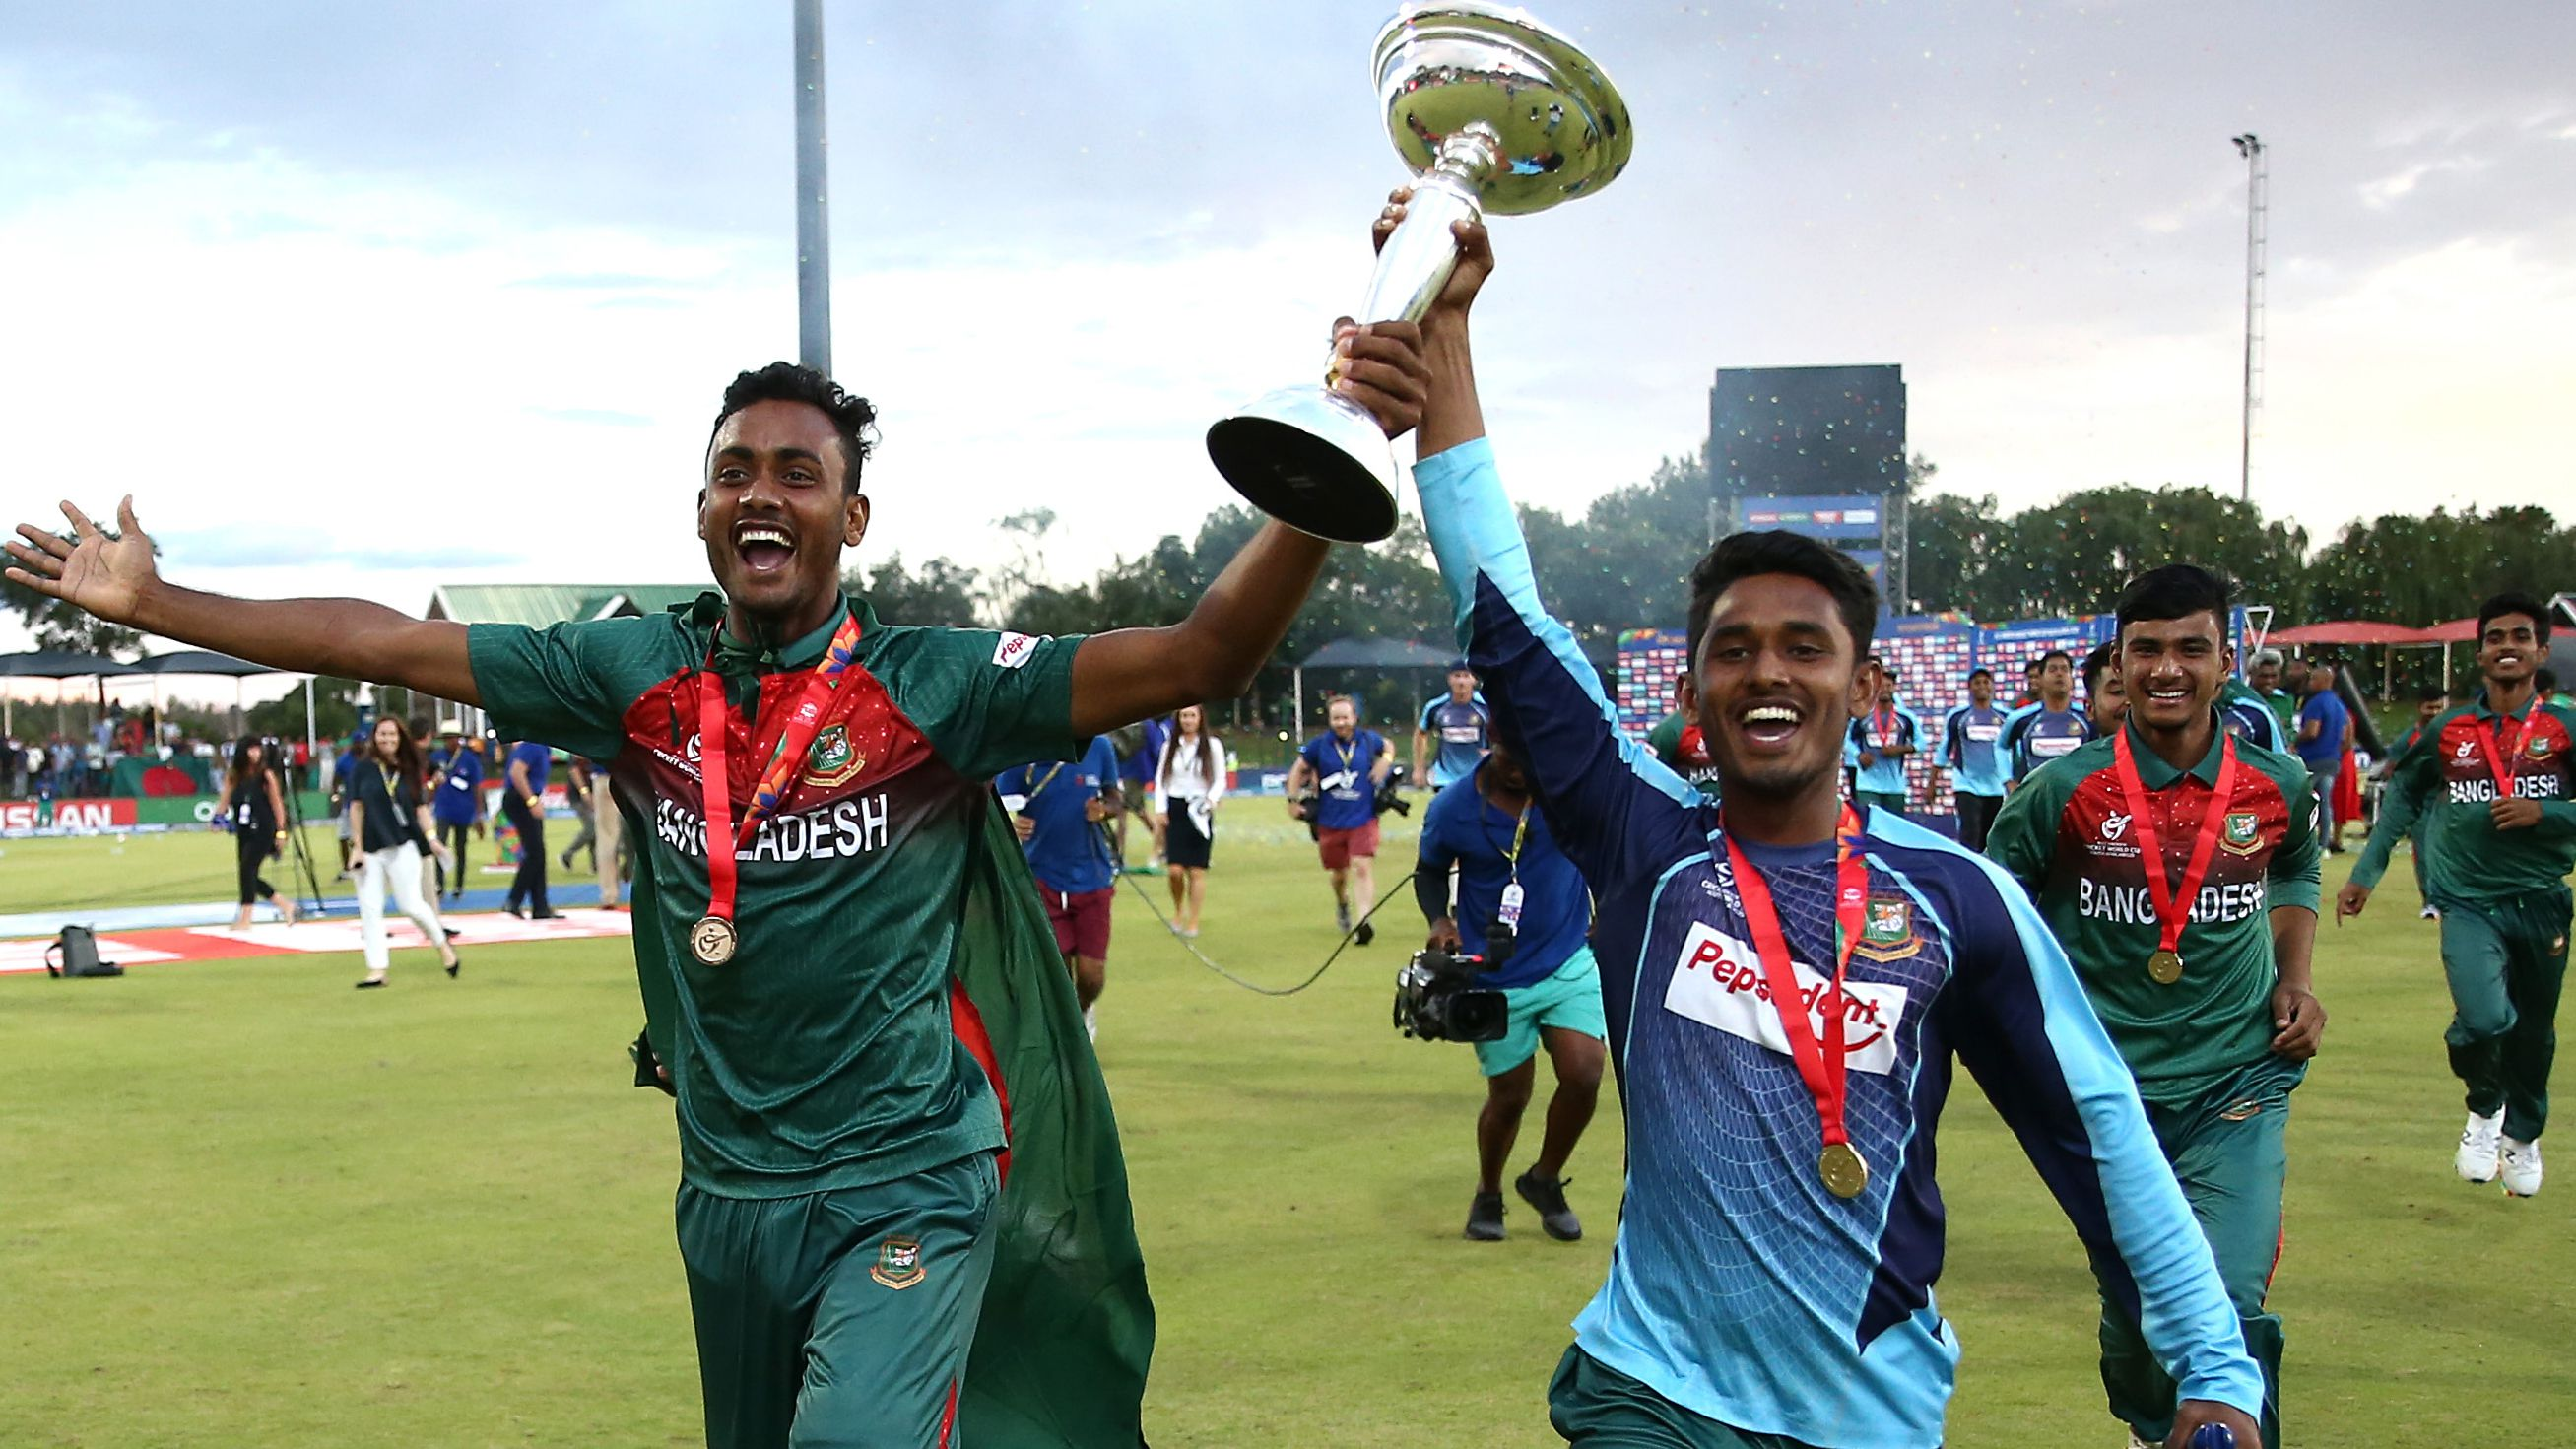 Legends doubt Bangladesh World Cup win will change world order